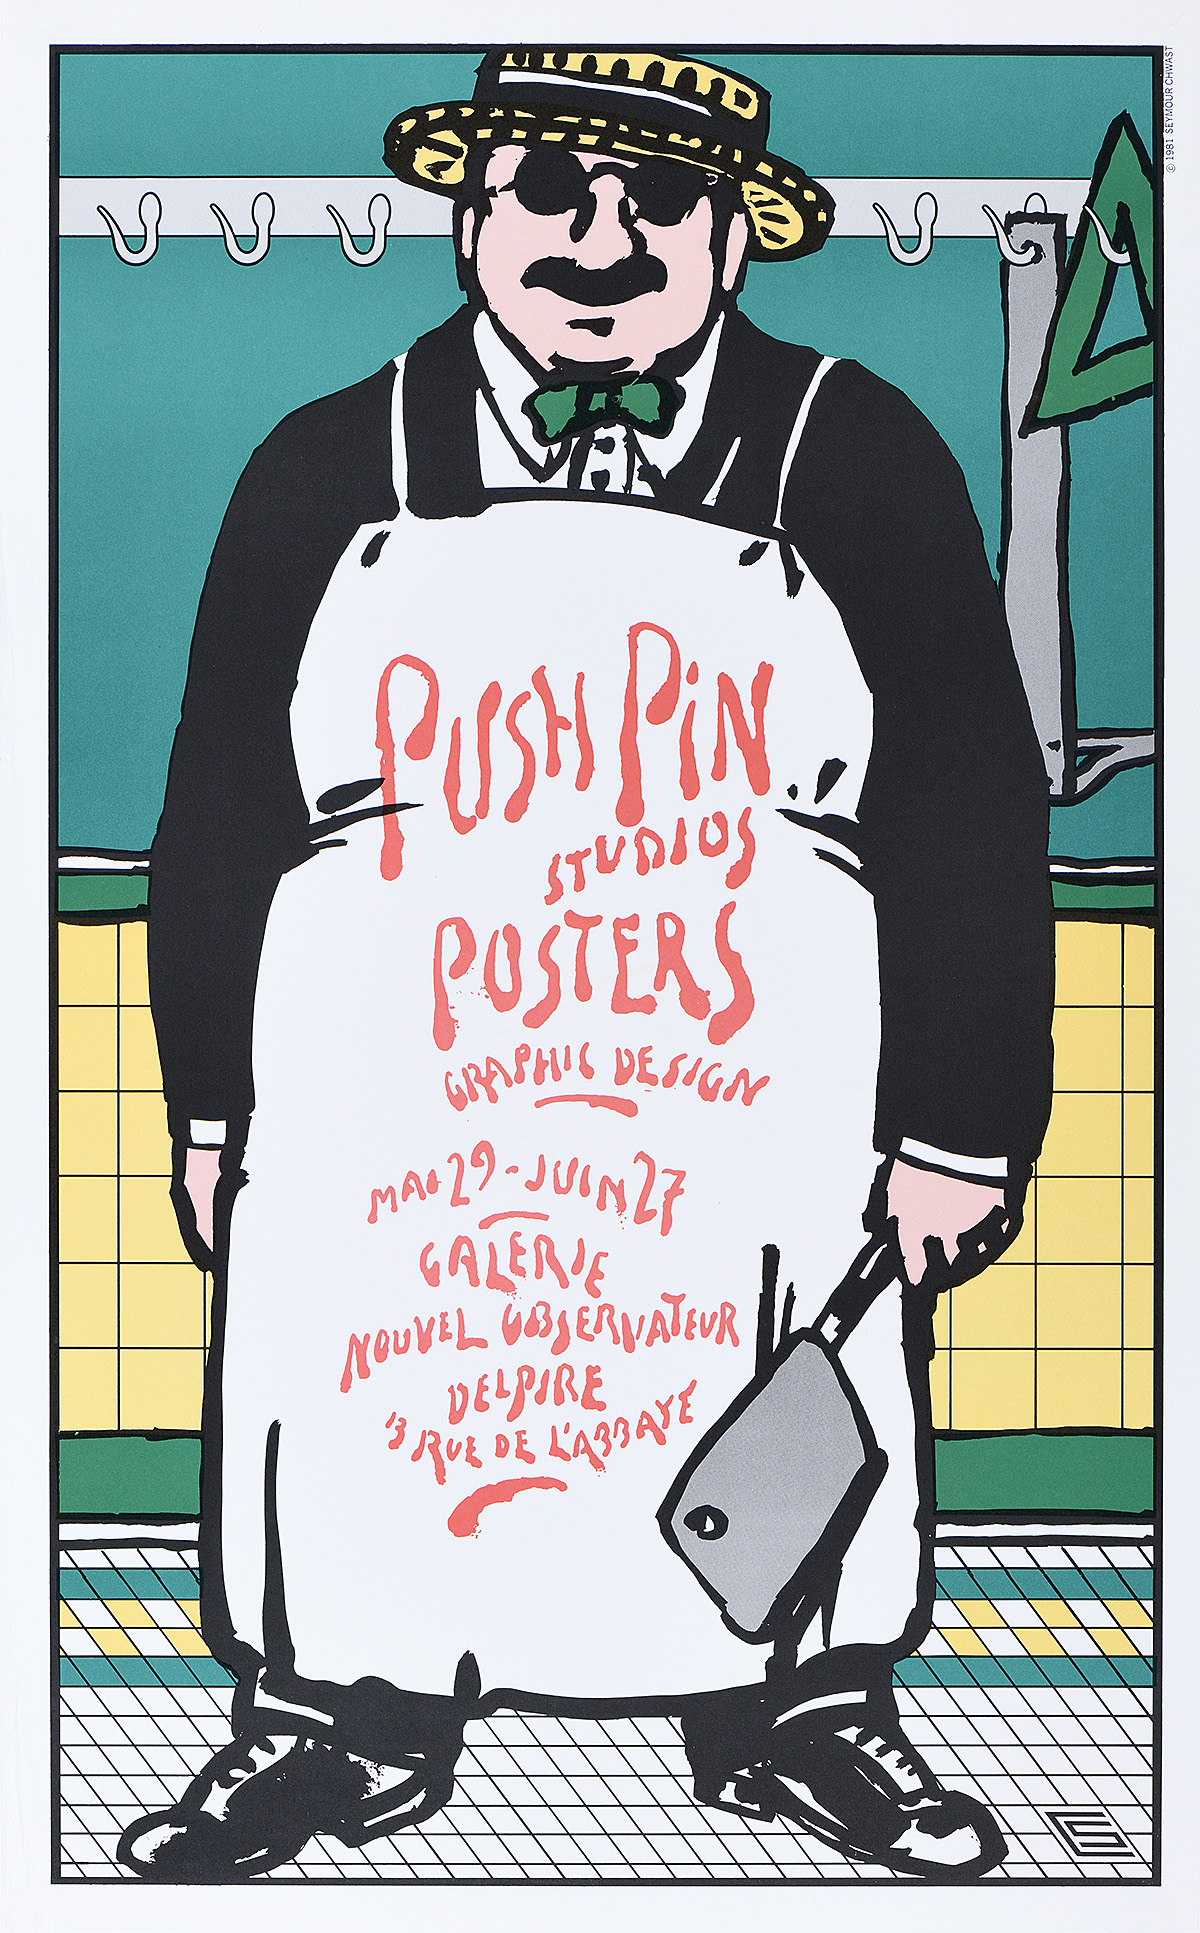 illustrational poster of a suited man wearing an apron and holding a chopping knife within an interior setting